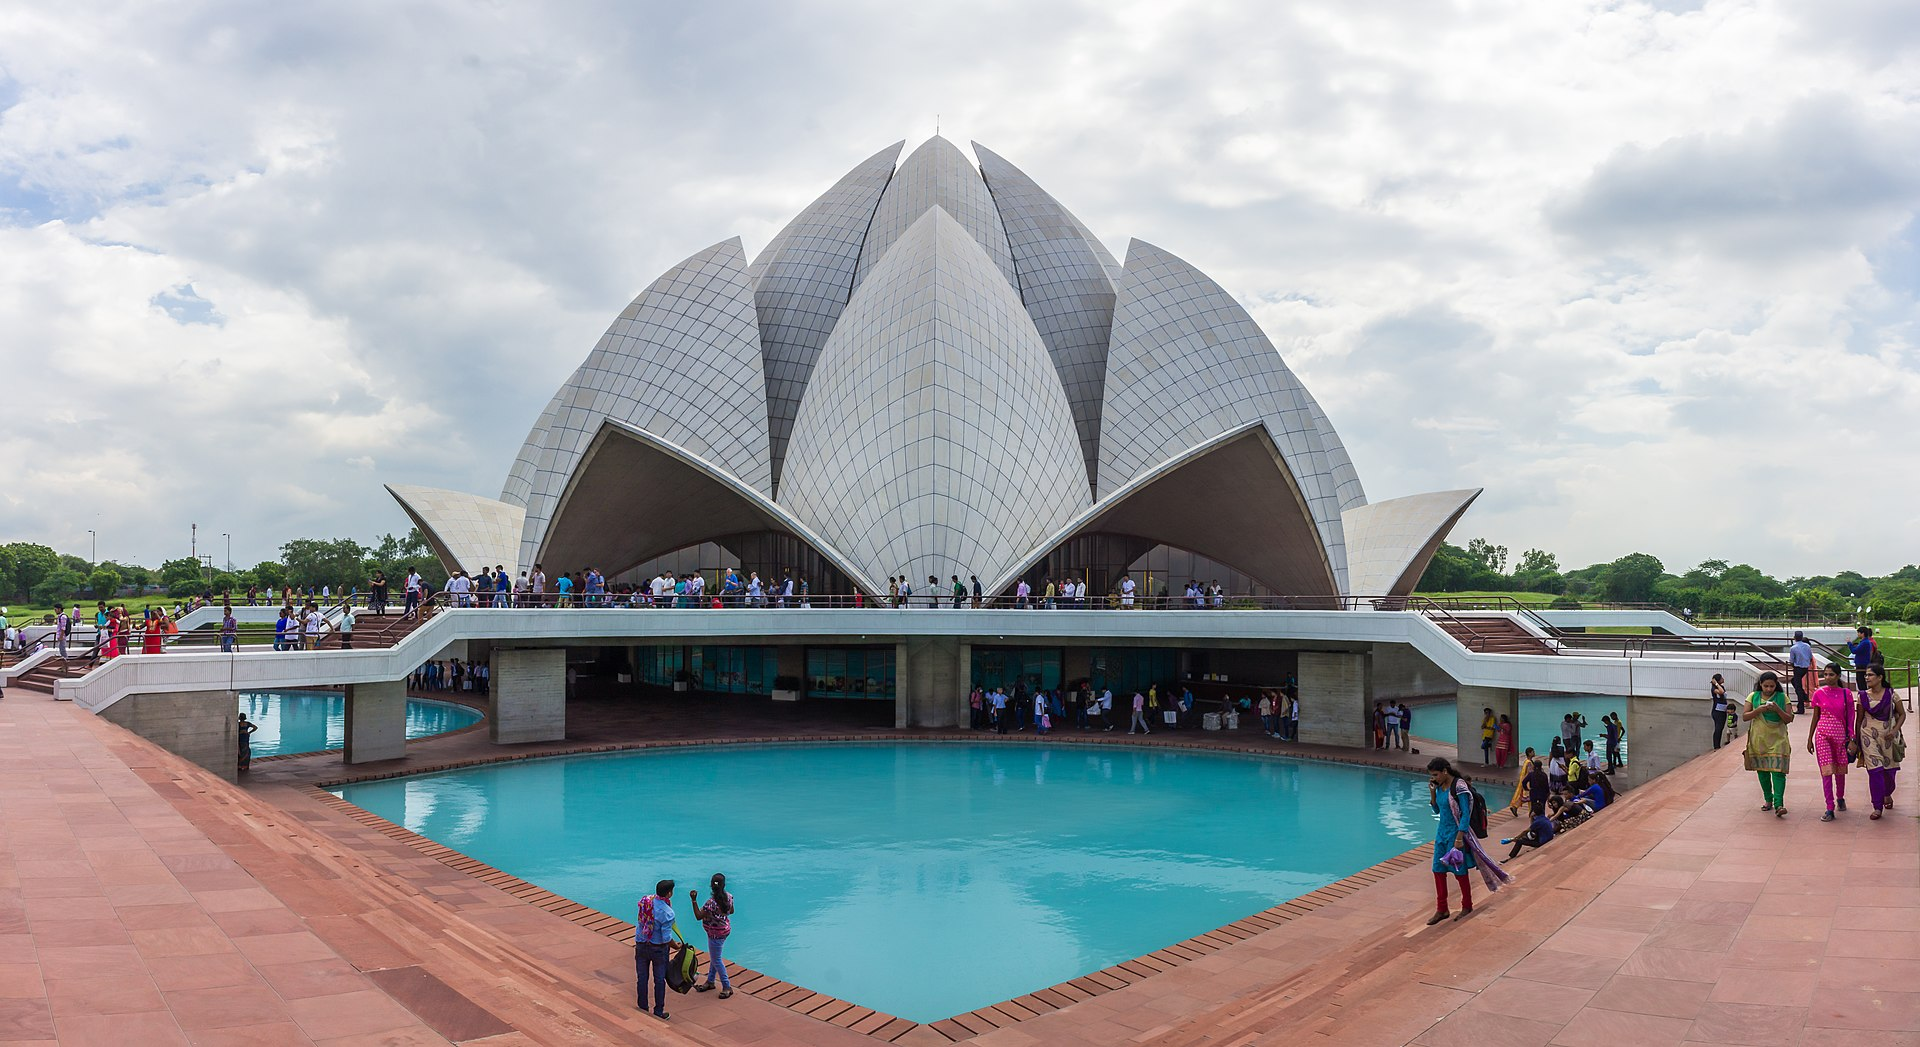 lotus temple wikipedia